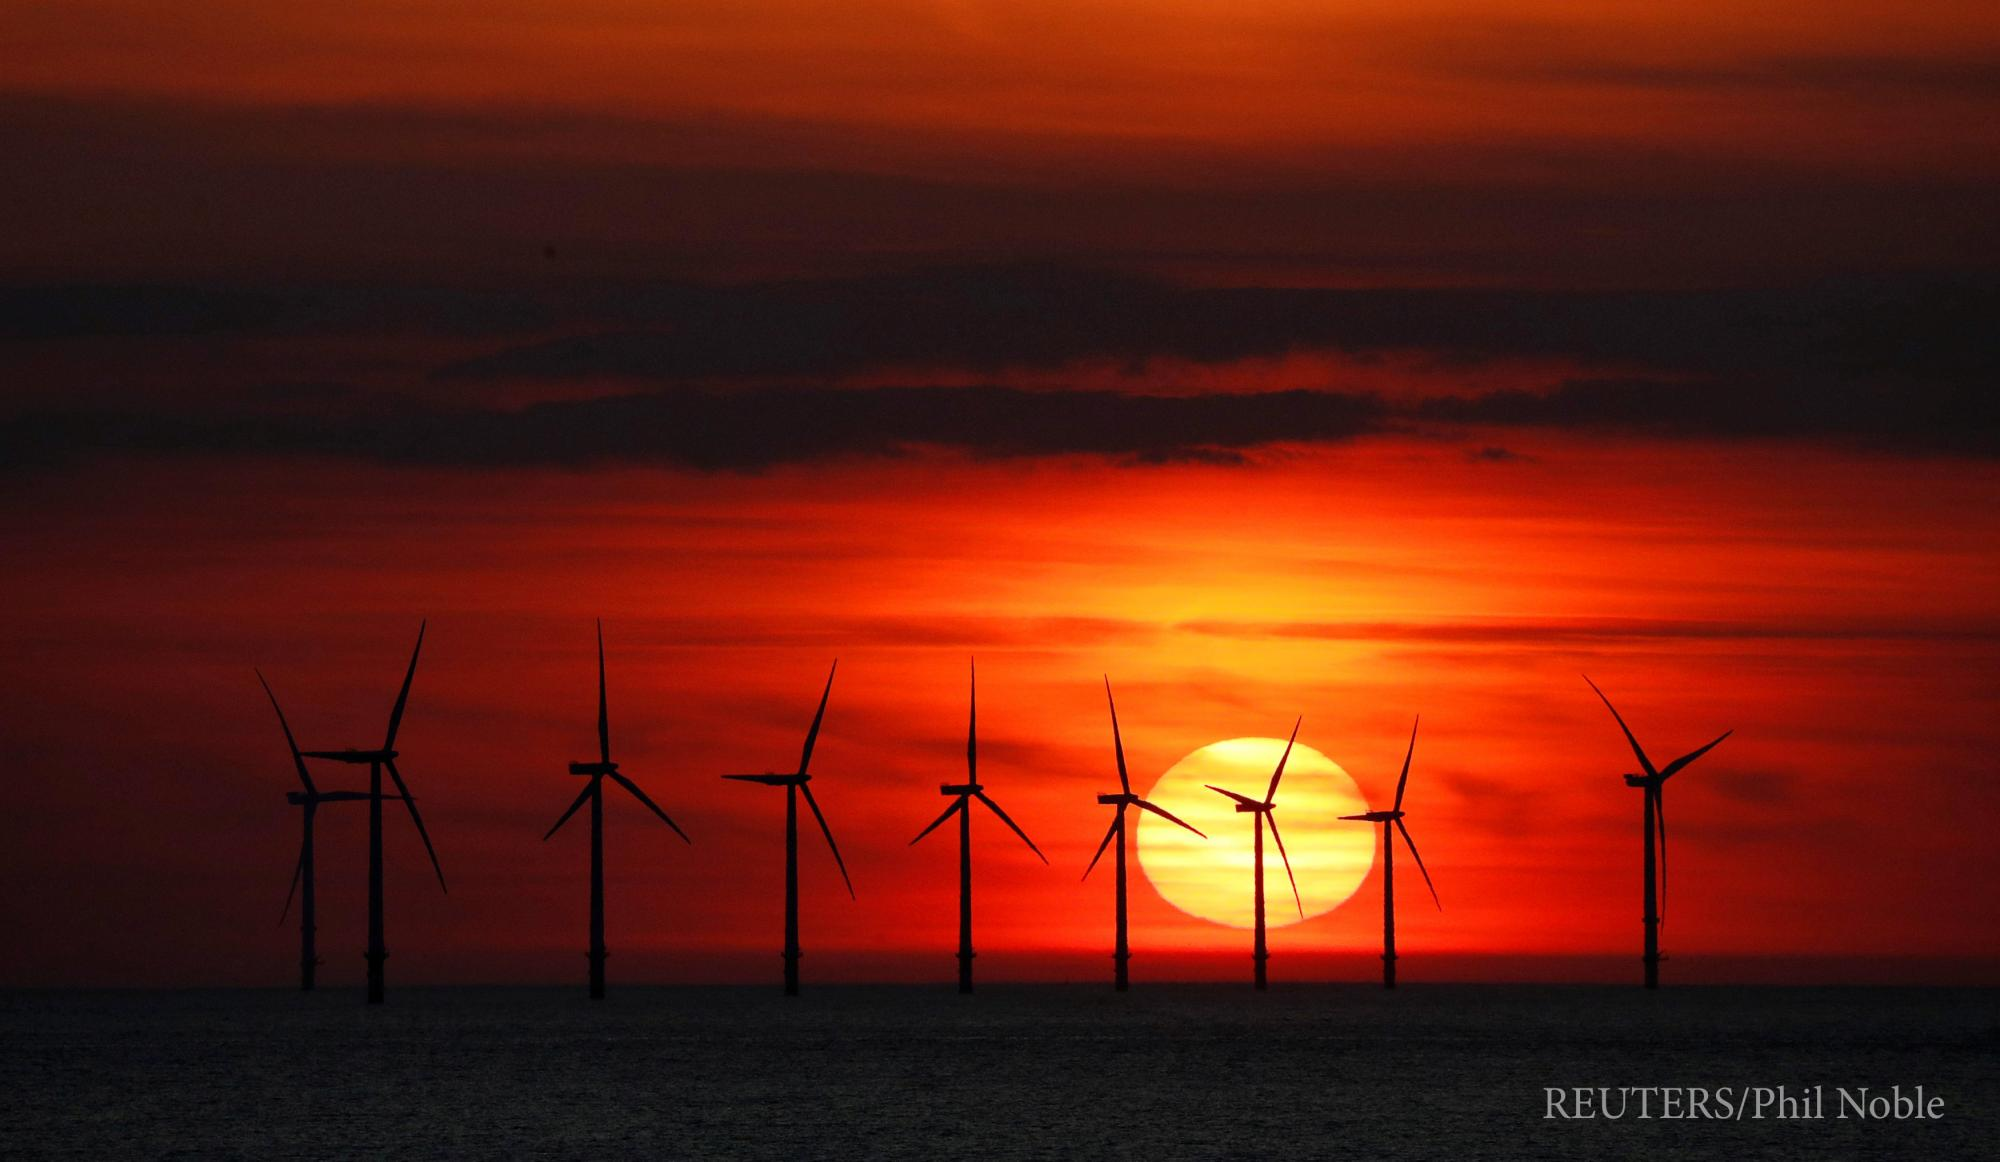 Wind turbines in front of a fiery red sunset